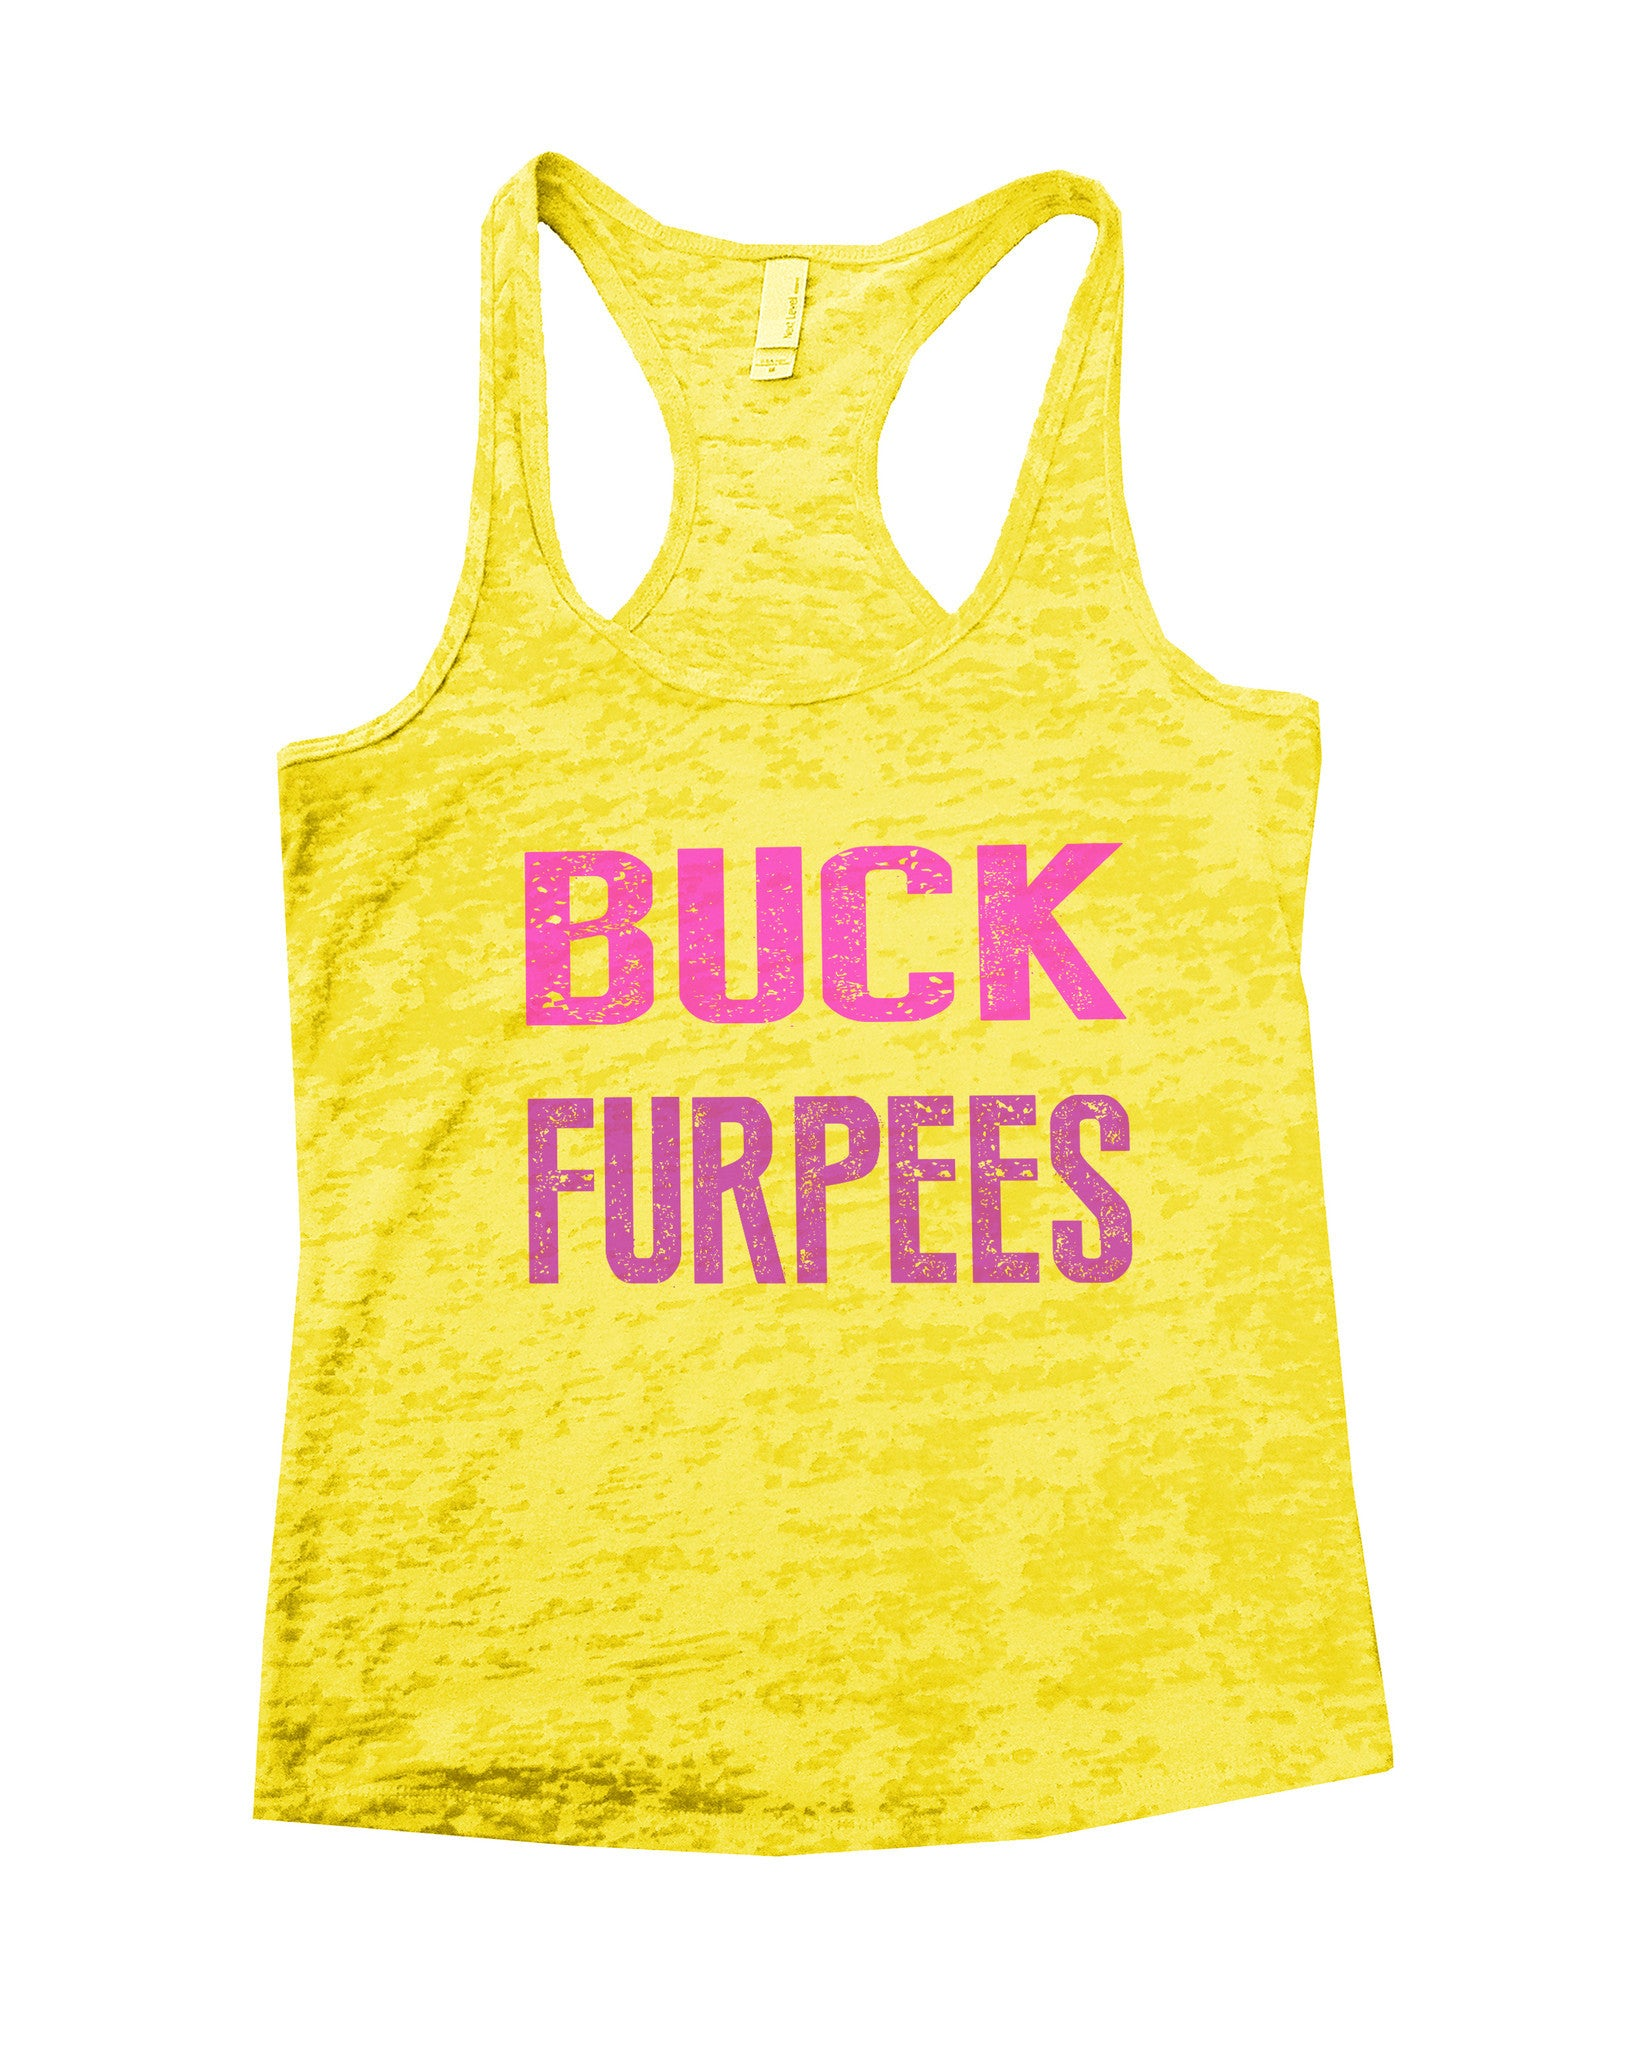 Buck Furpees Burnout Tank Top By BurnoutTankTops.com - 562 - Funny Shirts Tank Tops Burnouts and Triblends  - 6